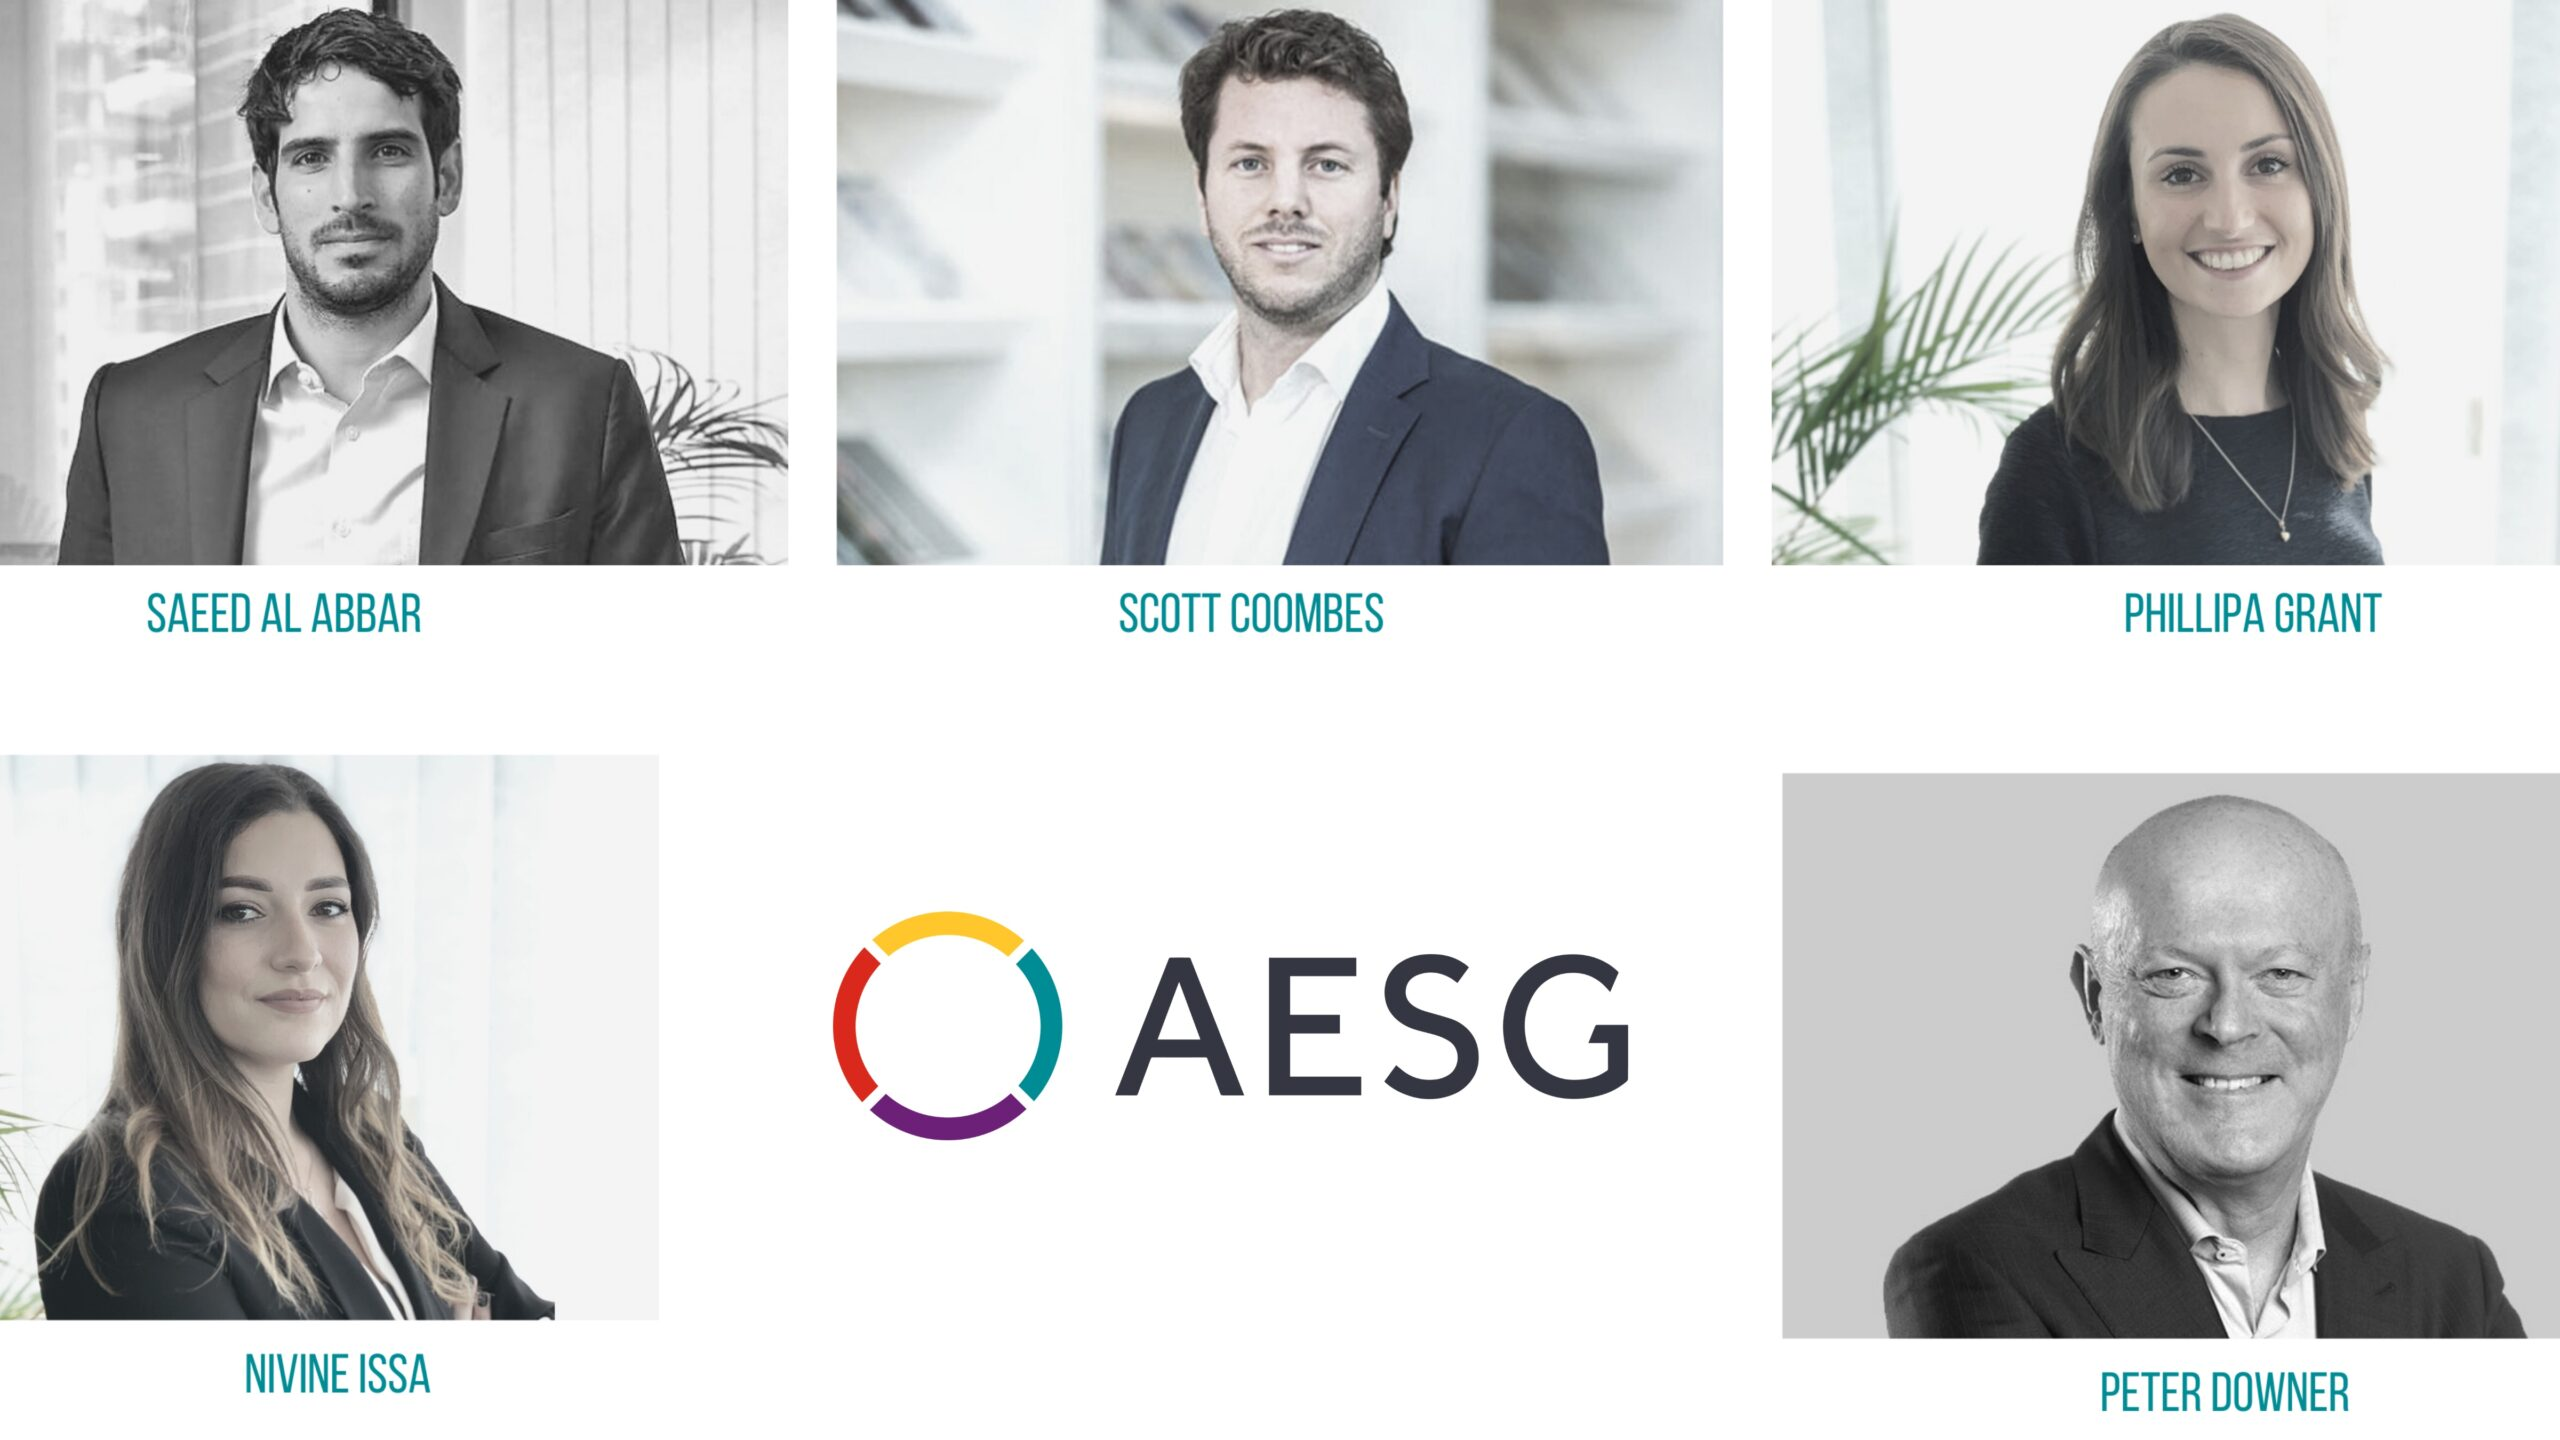 AESG in global expansion drive with 45% growth target for 2021